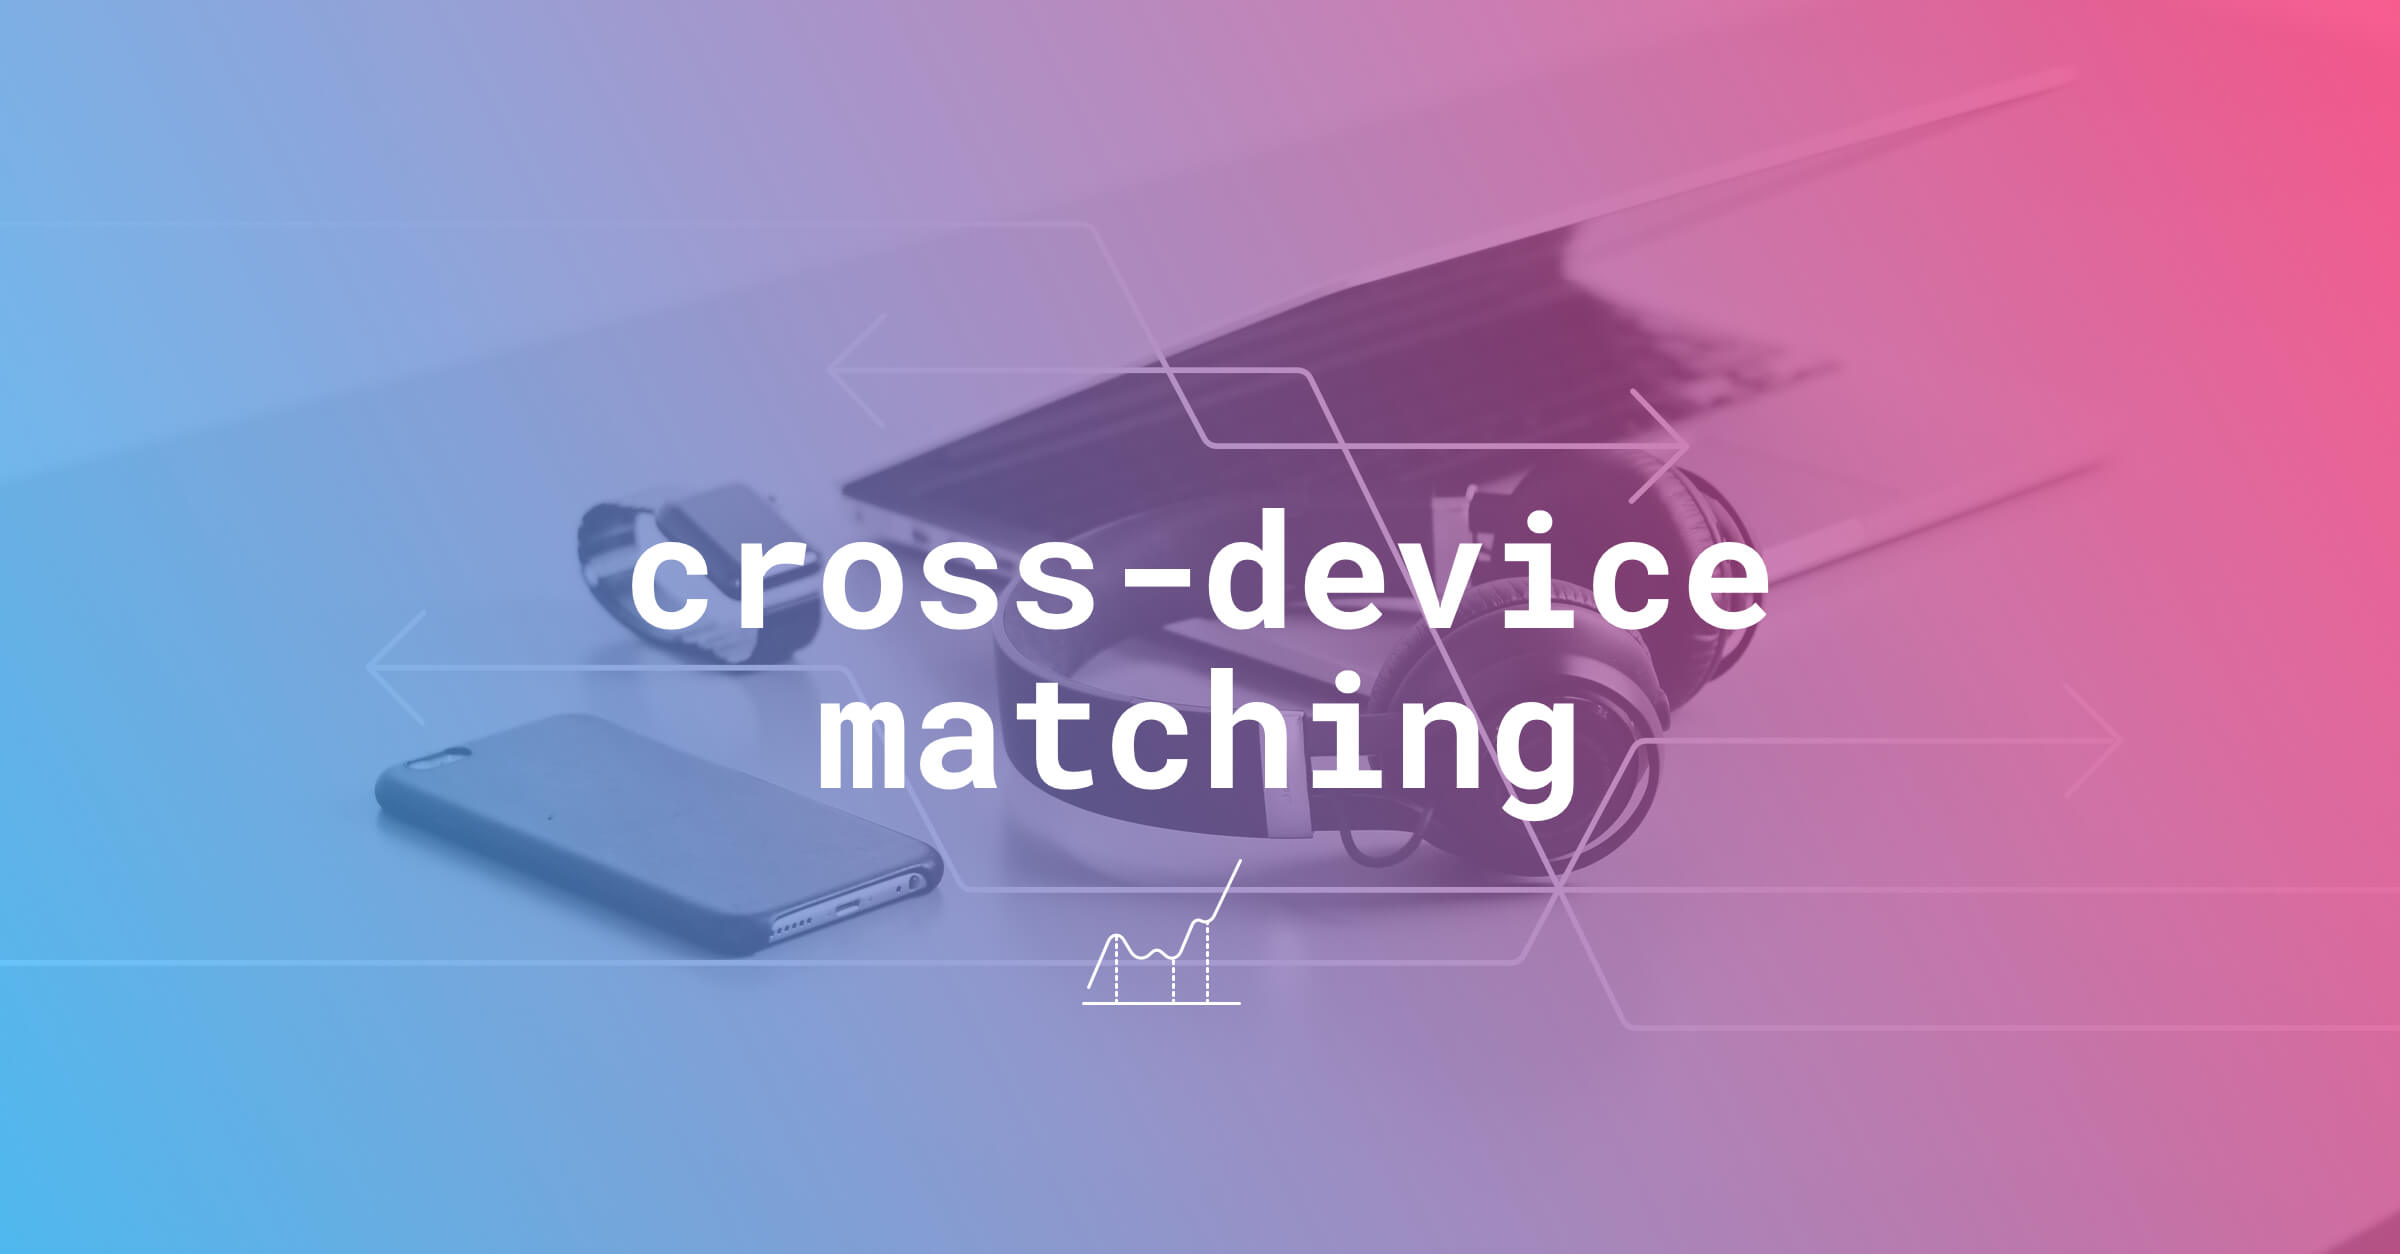 Cross-device matching